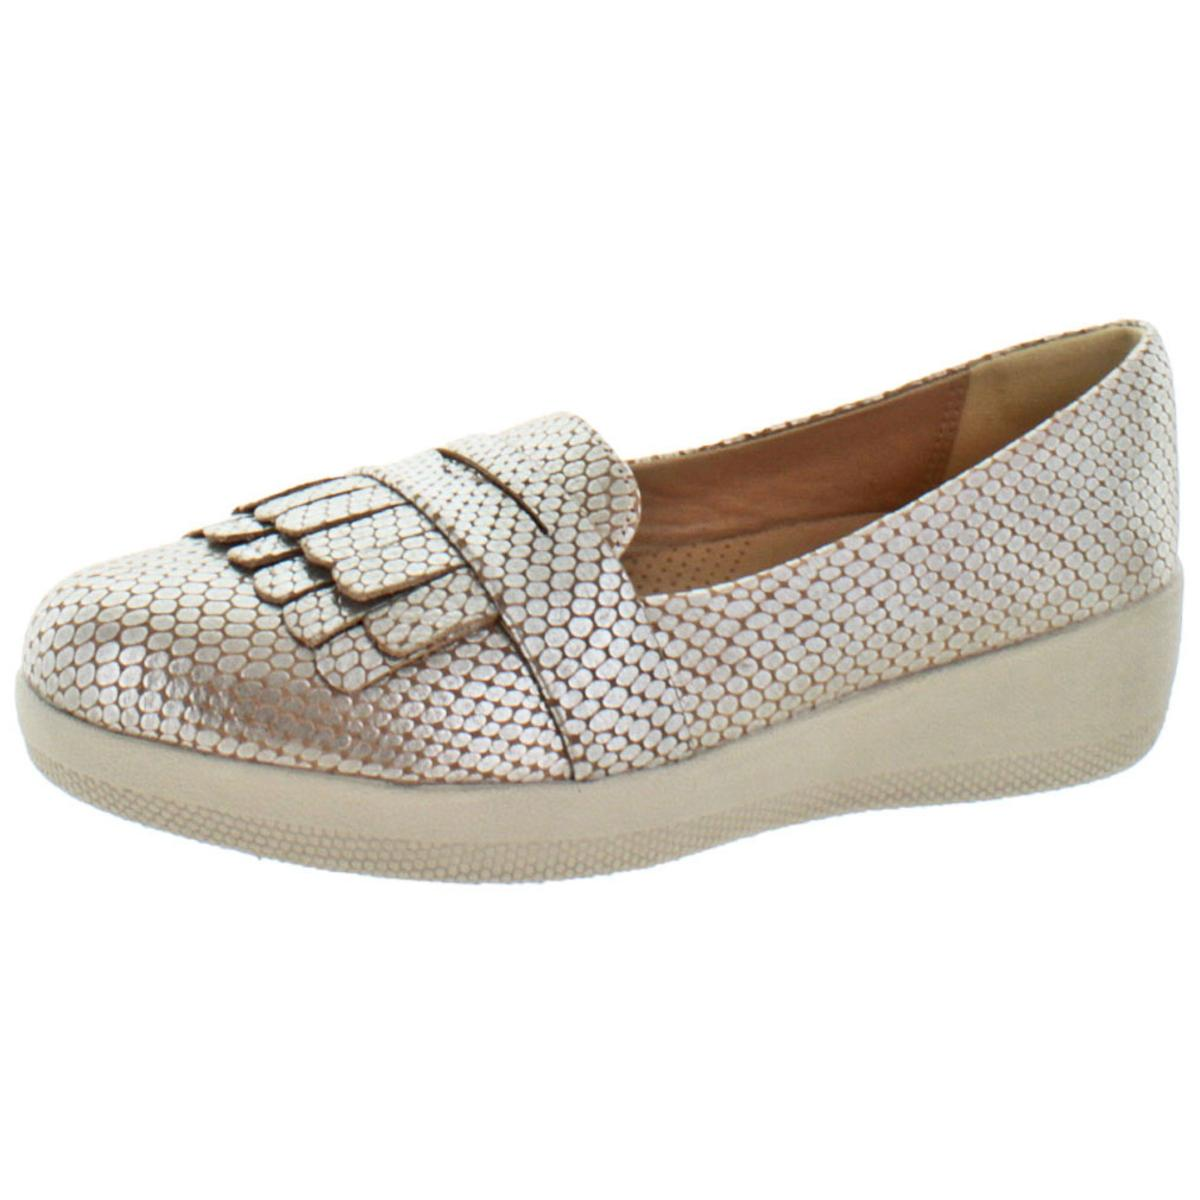 3b61713c248 FitFlop Womens Fringey Sneakerloafer Slip on Shoes Silver Snake US 8 ...